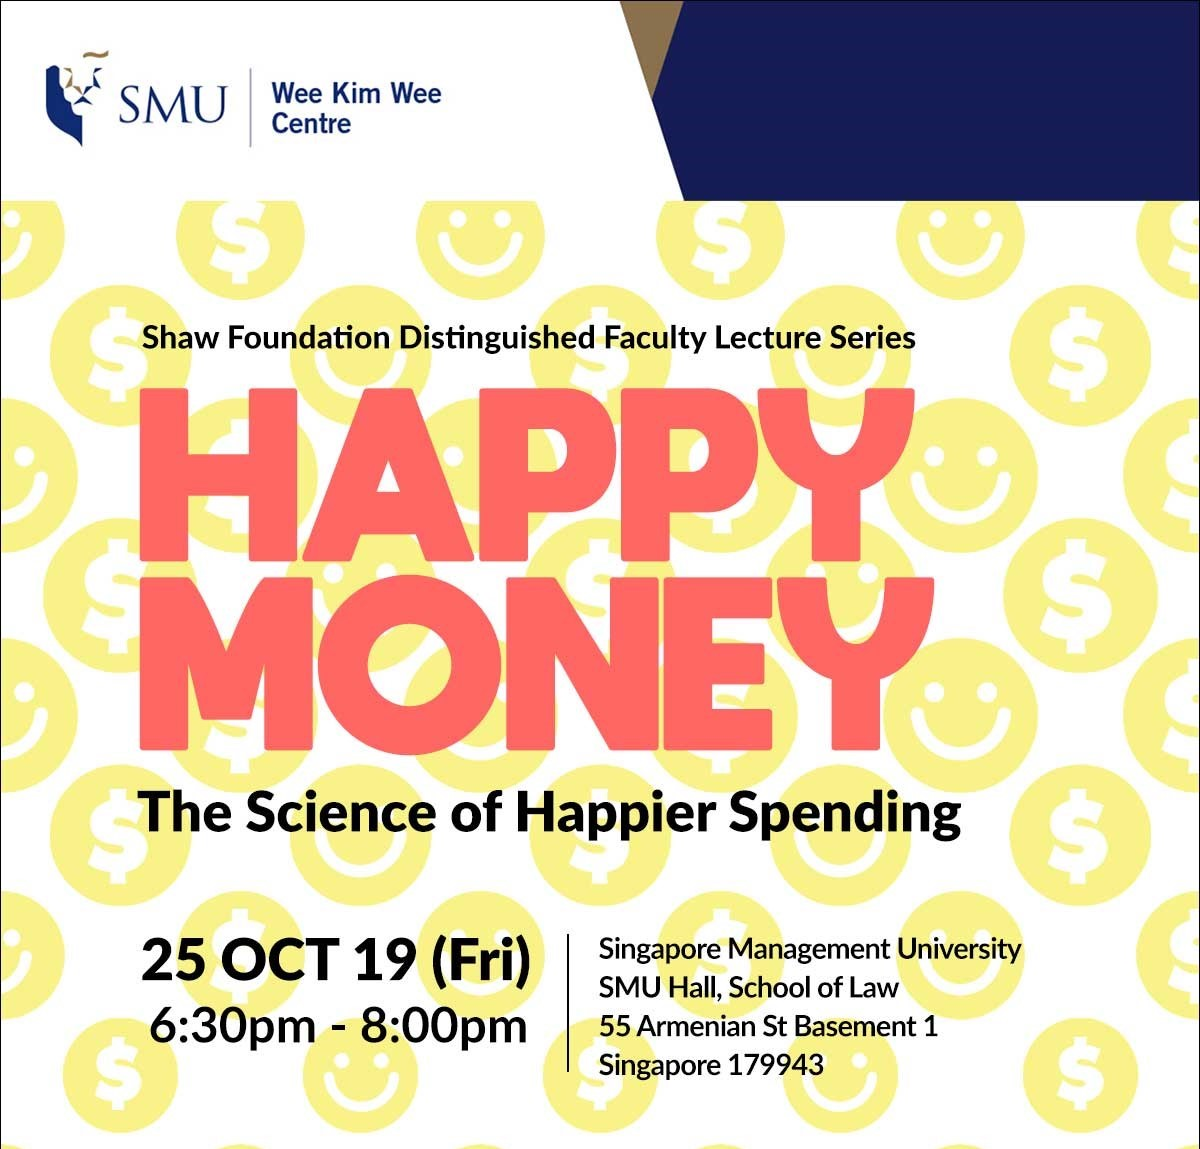 Shaw Foundation Distinguished Faculty Lecture Series: Happy Money: The Science of Happier Spending